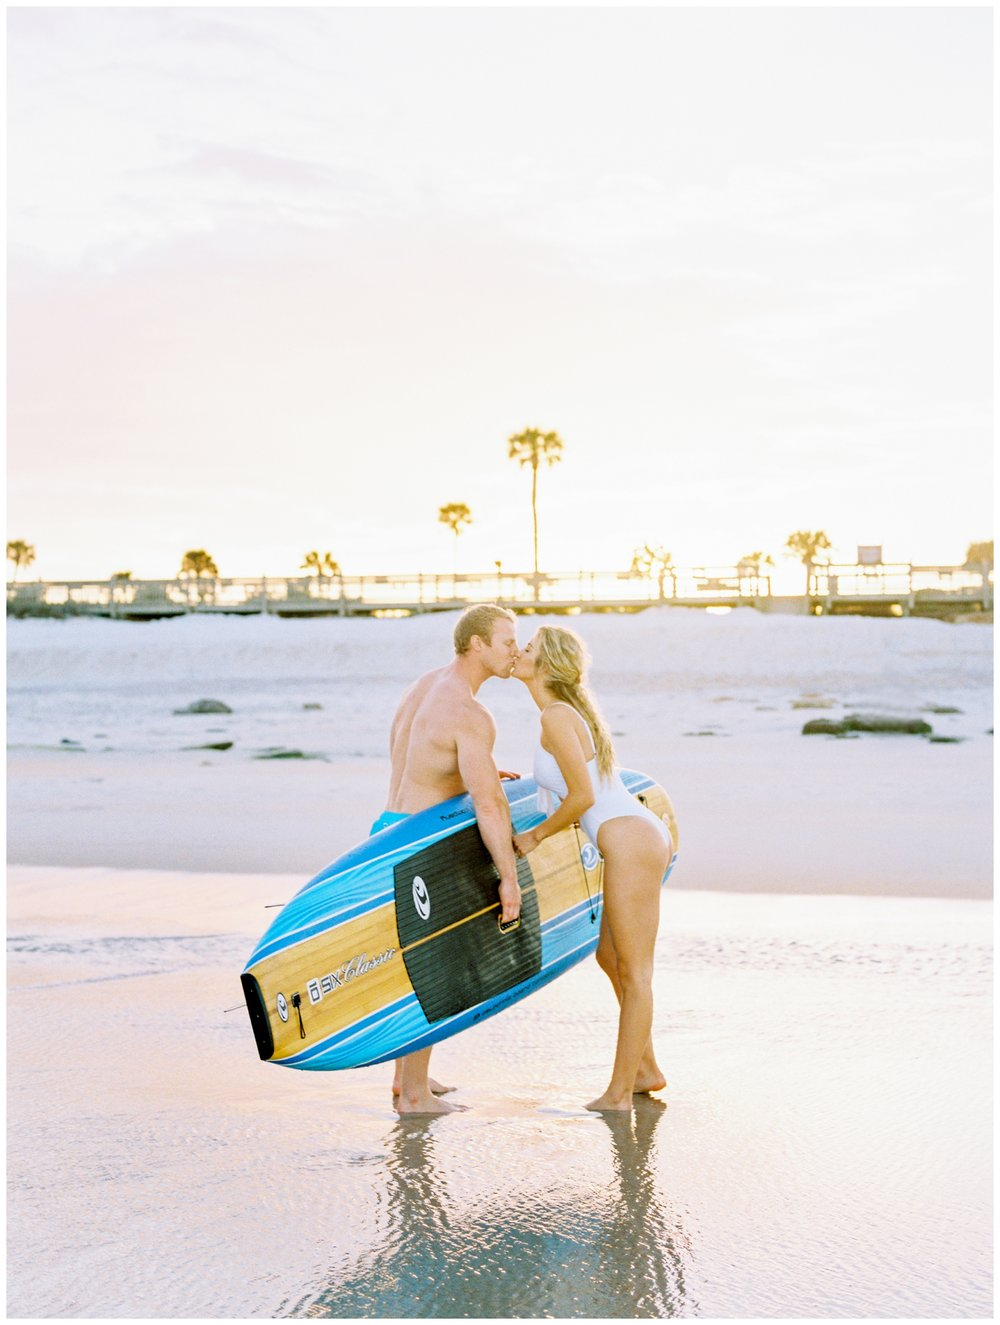 Lisa Silva Photography -Beachy Lifestyle Engagement Session in Palm Coast Florida - Jacksonville Film Photograpgers_0036.jpg